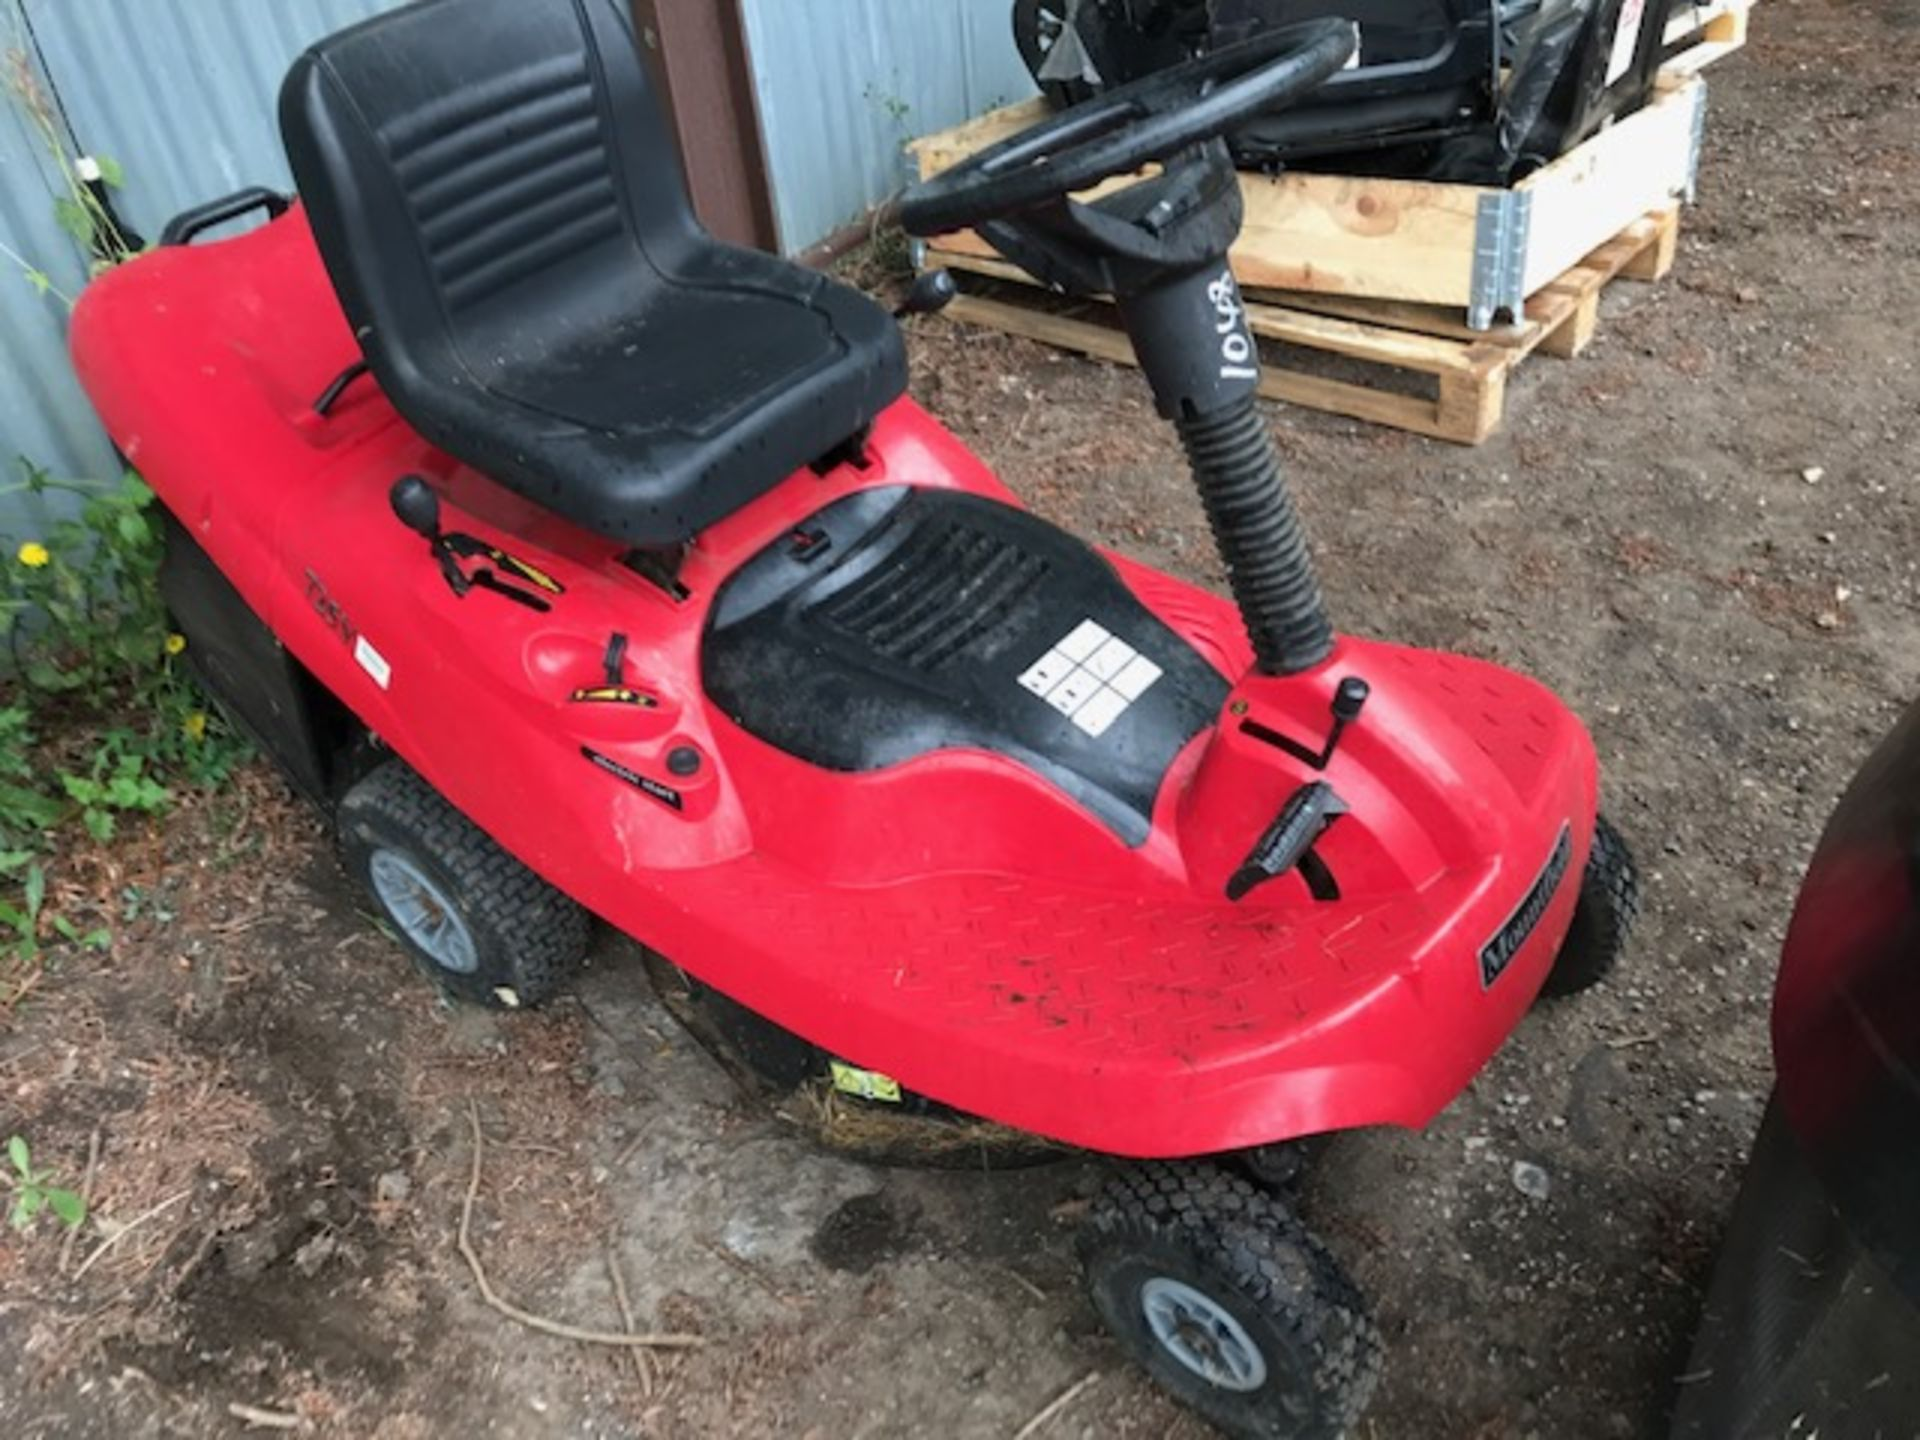 Lot 1048 - red ride on mower